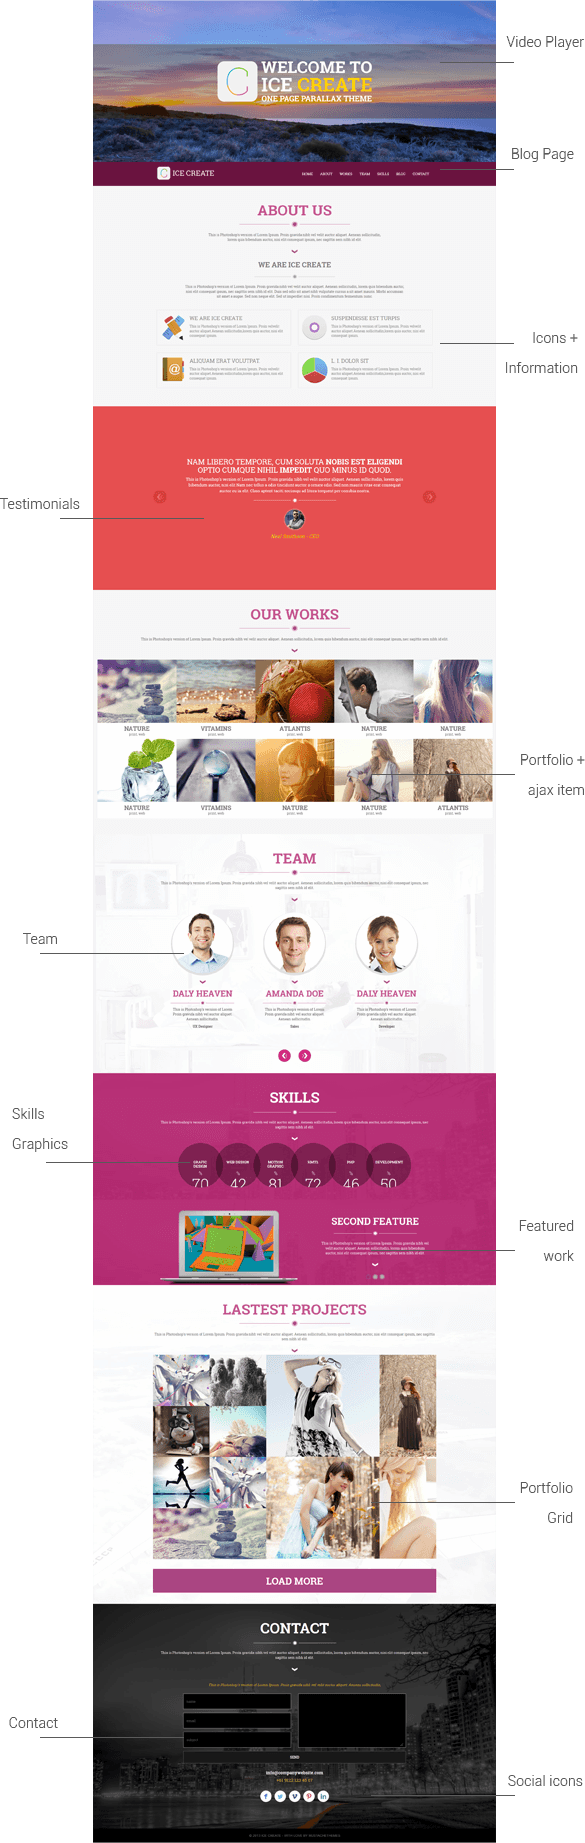 ICE Create - Responsive One Page HTML Template descroption